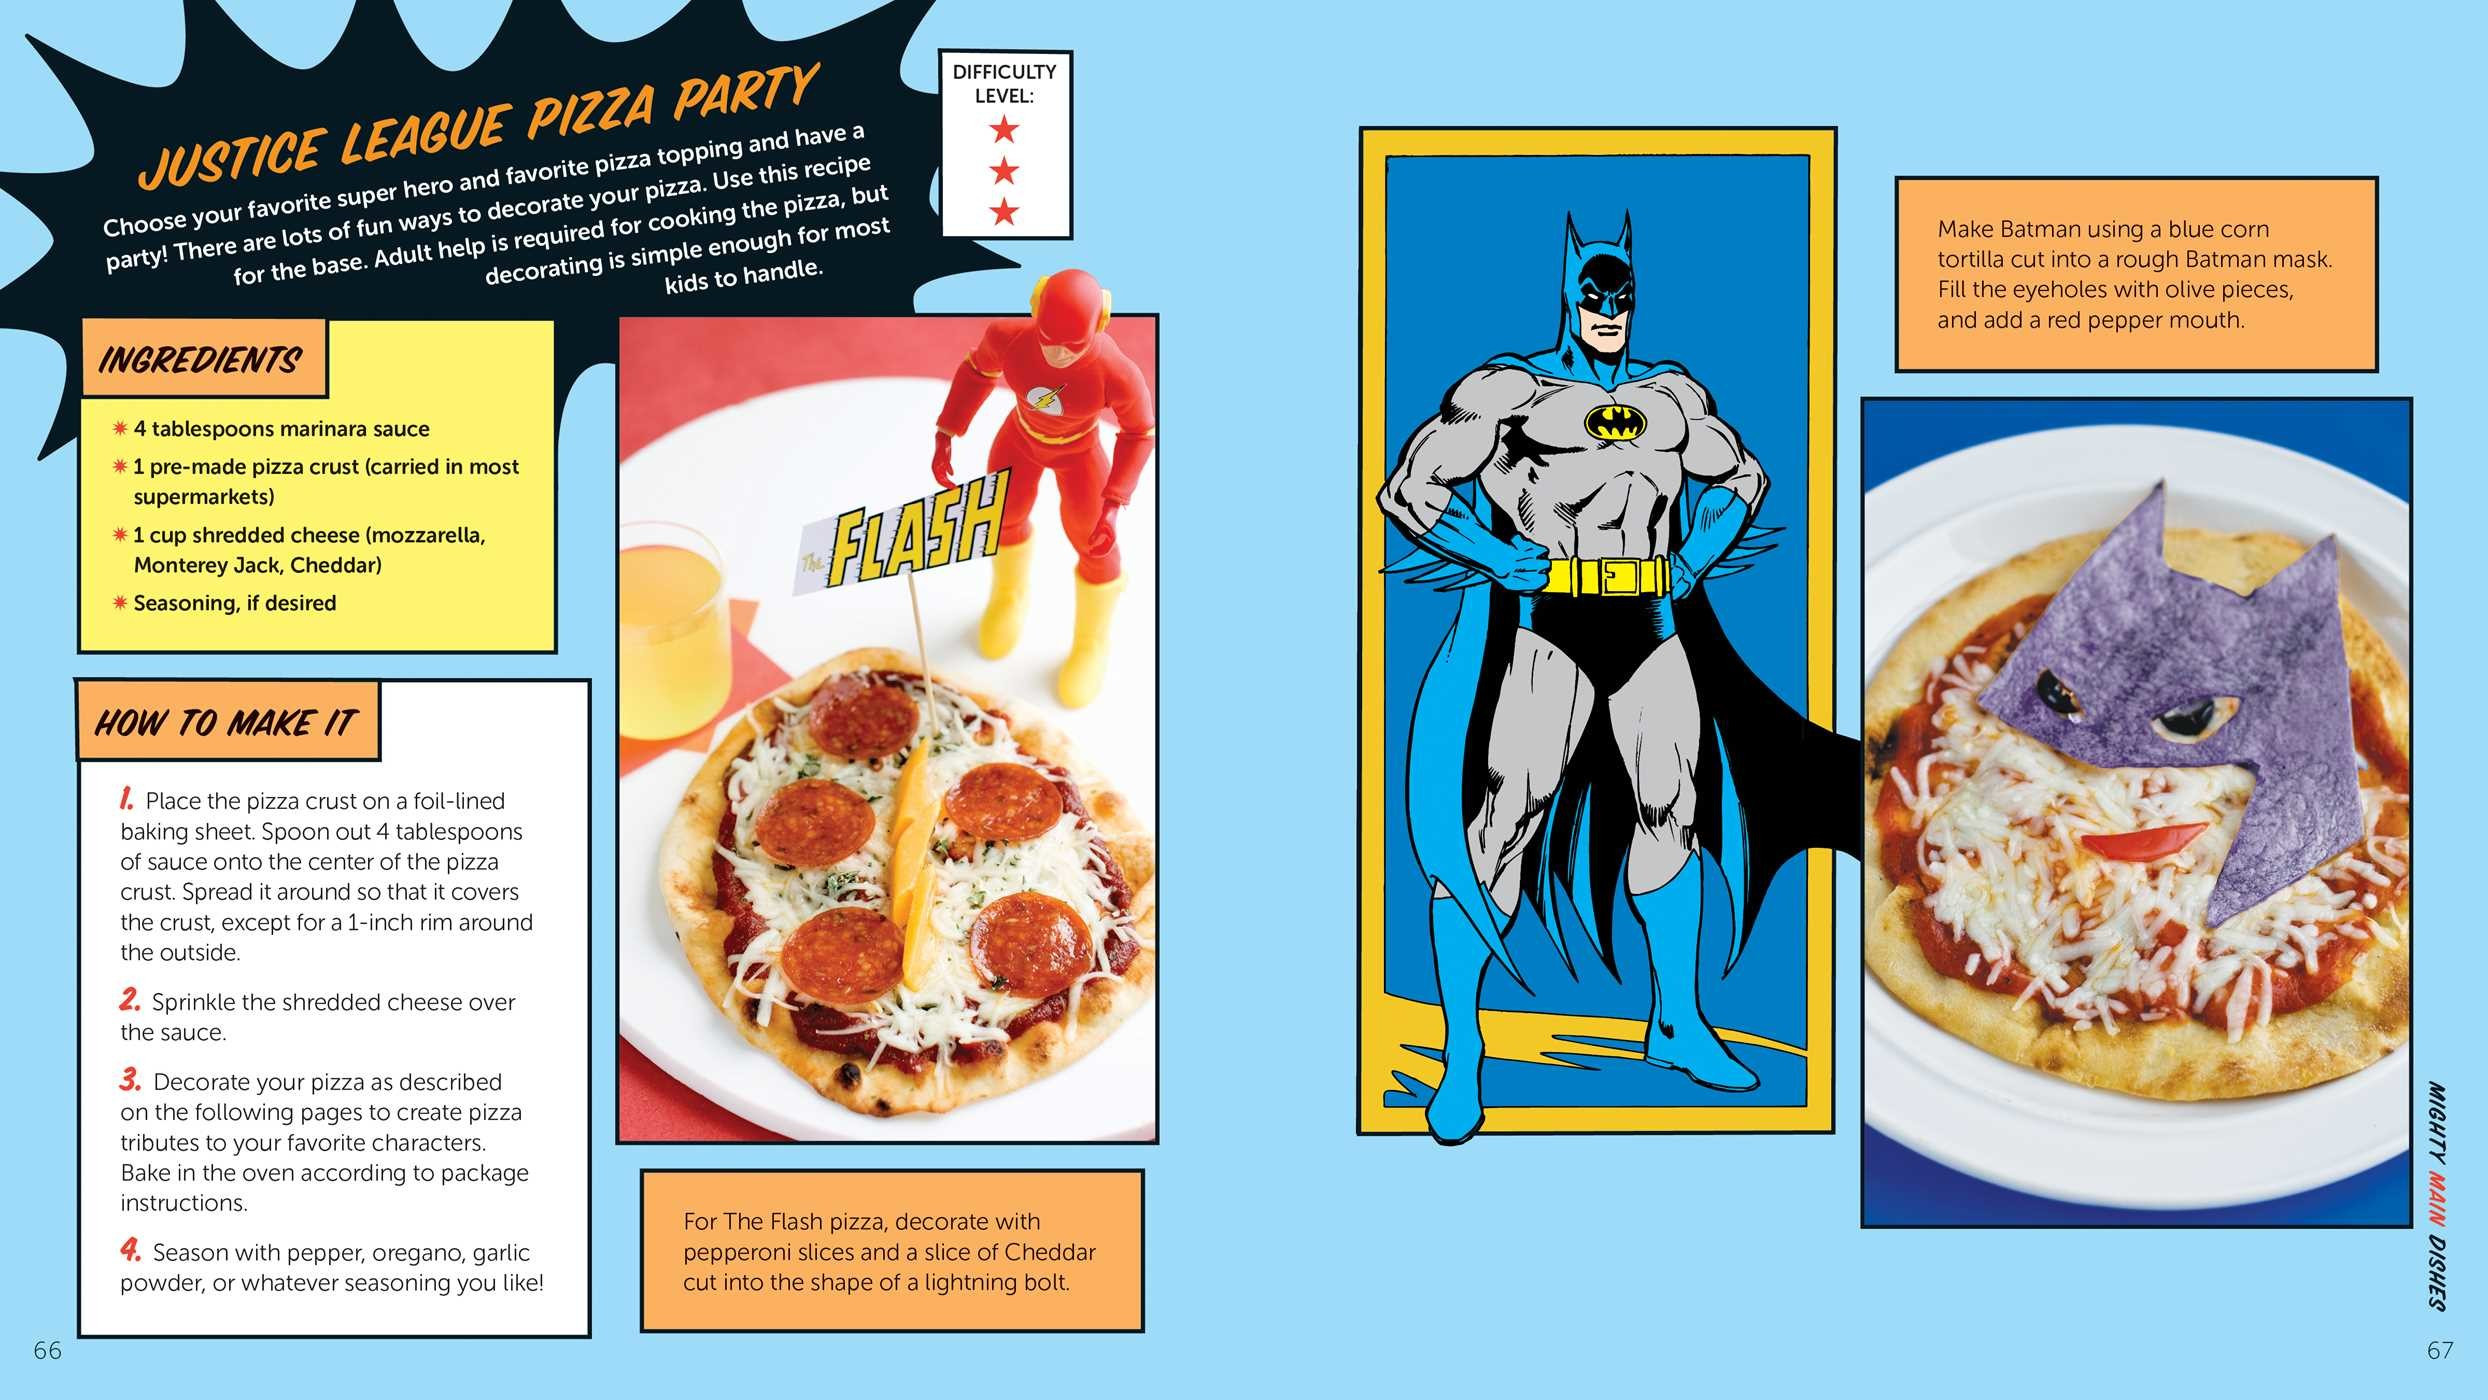 The official dc super hero cookbook 9781935703914.in05